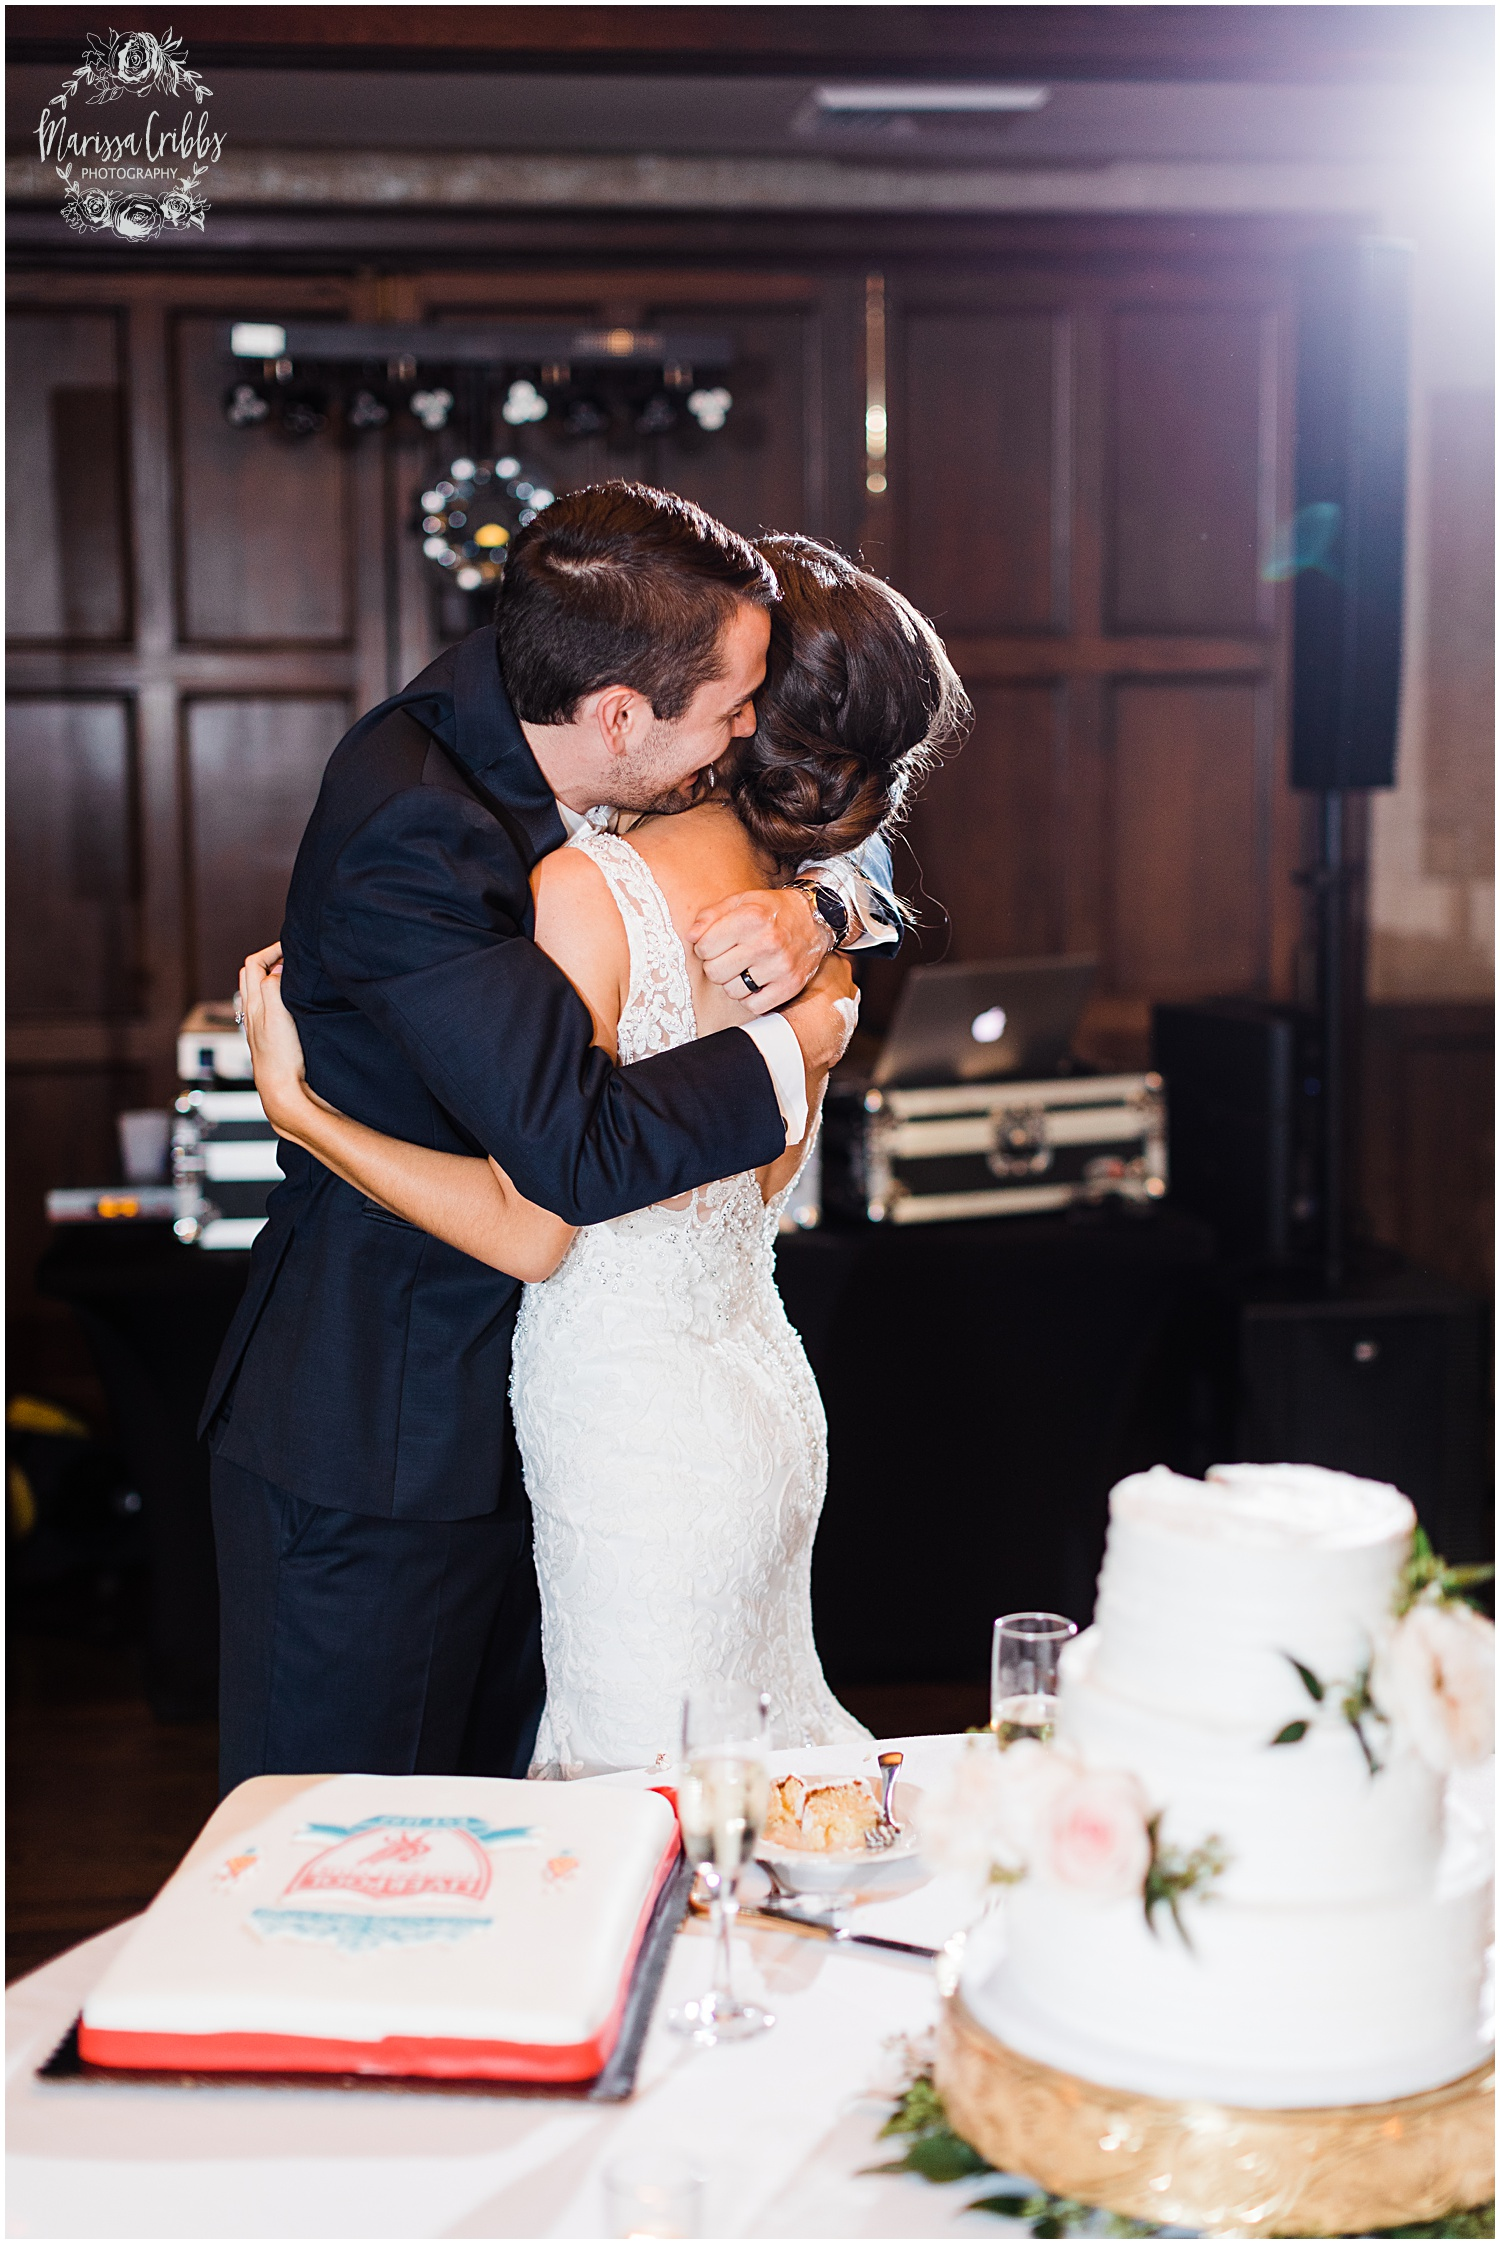 MEGAN & DEREK WEDDING BLOG | MARISSA CRIBBS PHOTOGRAPHY_8213.jpg